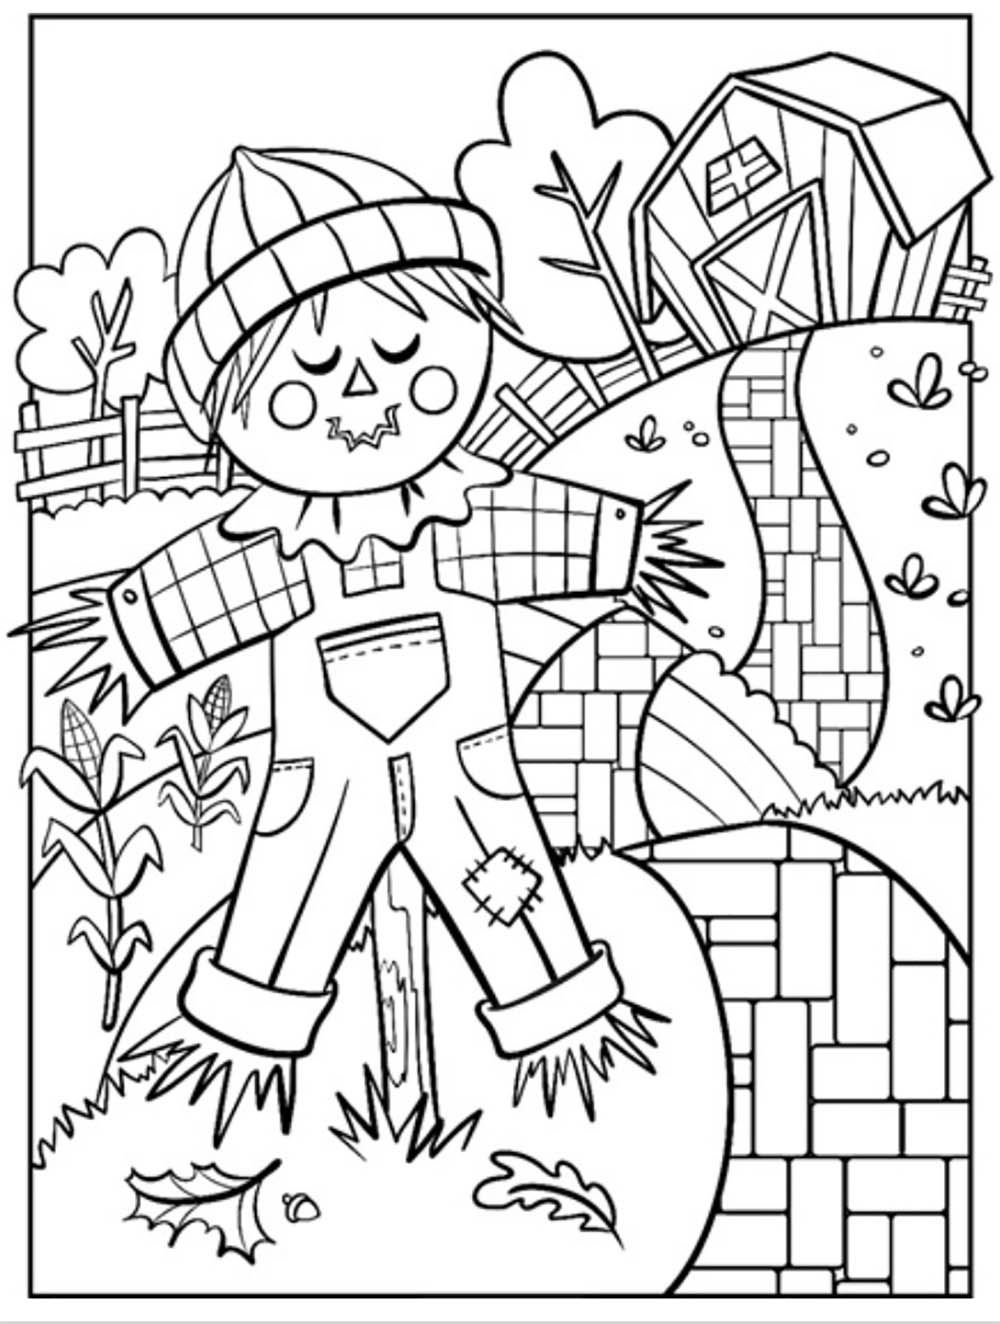 Coloring Books You Can Download For Free Right Now Coloring Pages Free Coloring Pages Thanksgiving Coloring Pages [ 1324 x 1000 Pixel ]